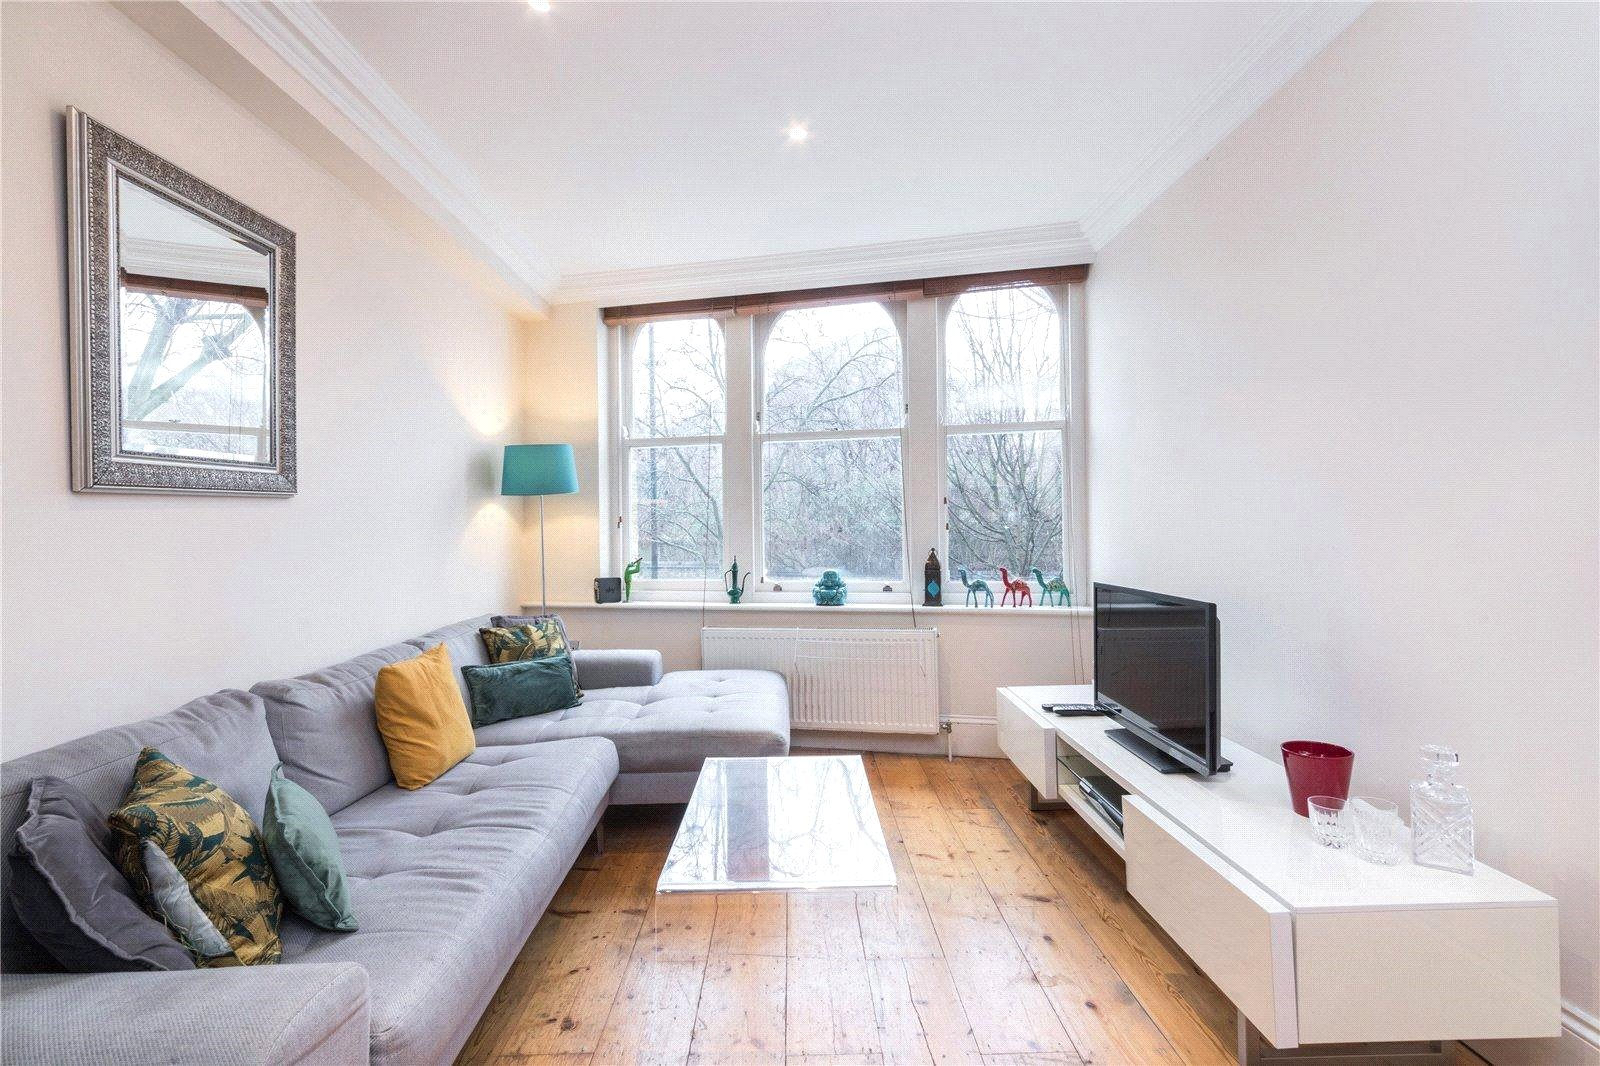 2 bed apartment to rent in Arsenal, N5 1LU  - Property Image 1